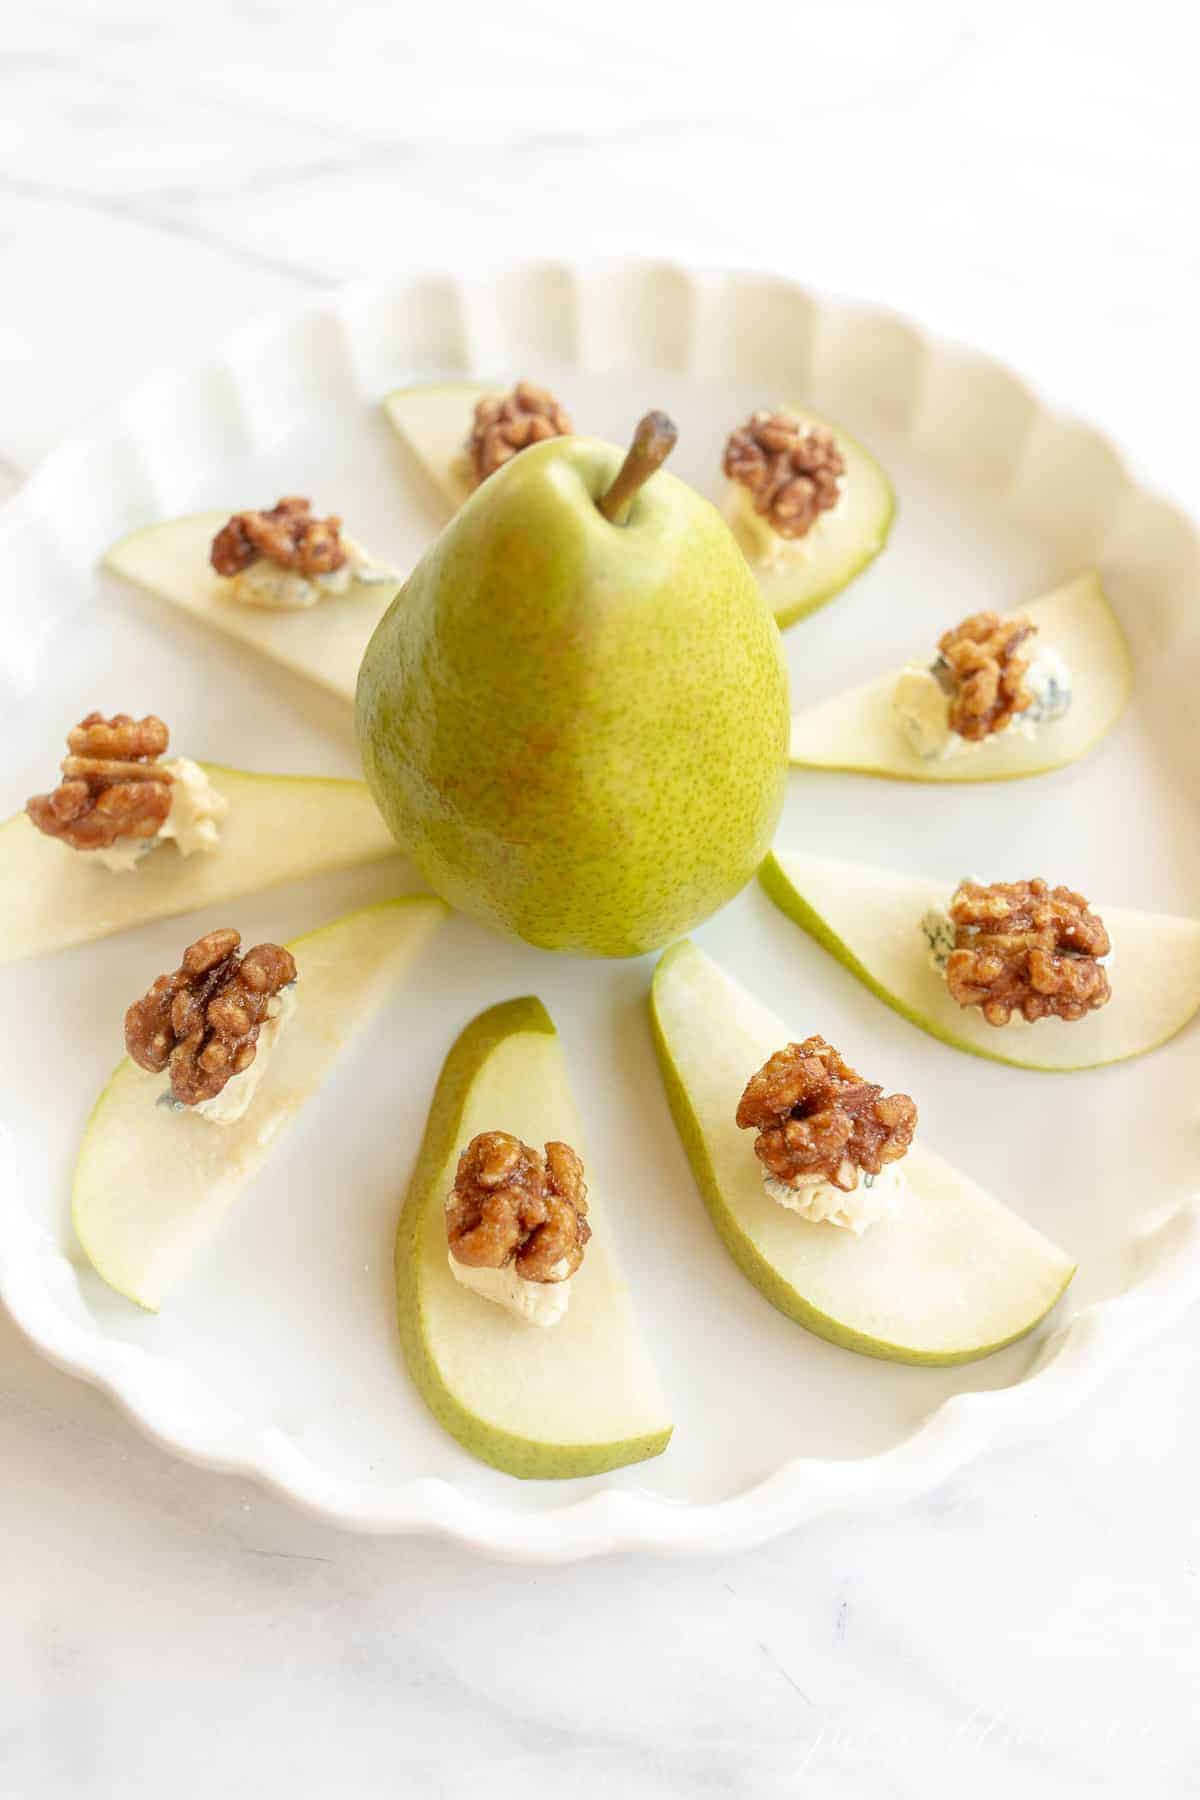 pear appetizer topped with blue cheese and walnuts displayed in a circular white platter